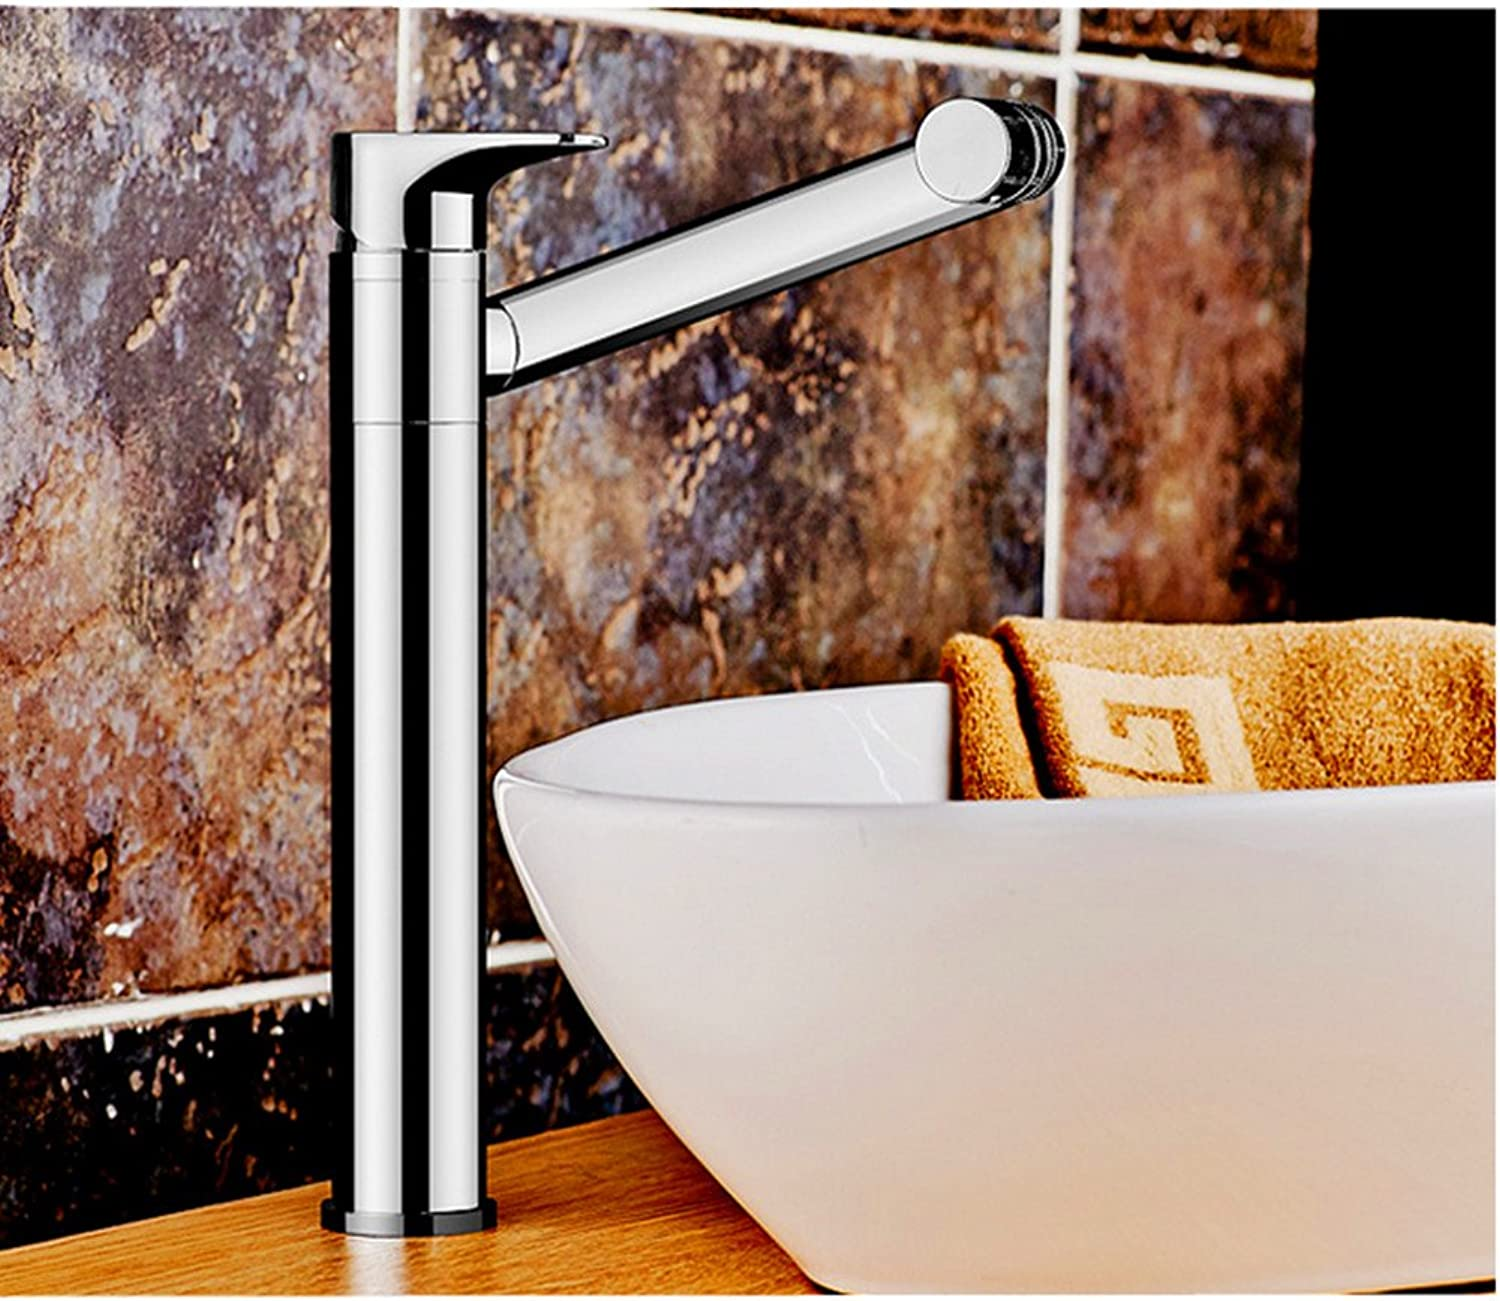 QYJ Wash Basin Hot And Cold Faucet Copper Thickened redating Bathroom Toilet Sink Washbasin Heightening Faucet redary Water Throw Away Mug Cup Wash Your Head Without Bending,High